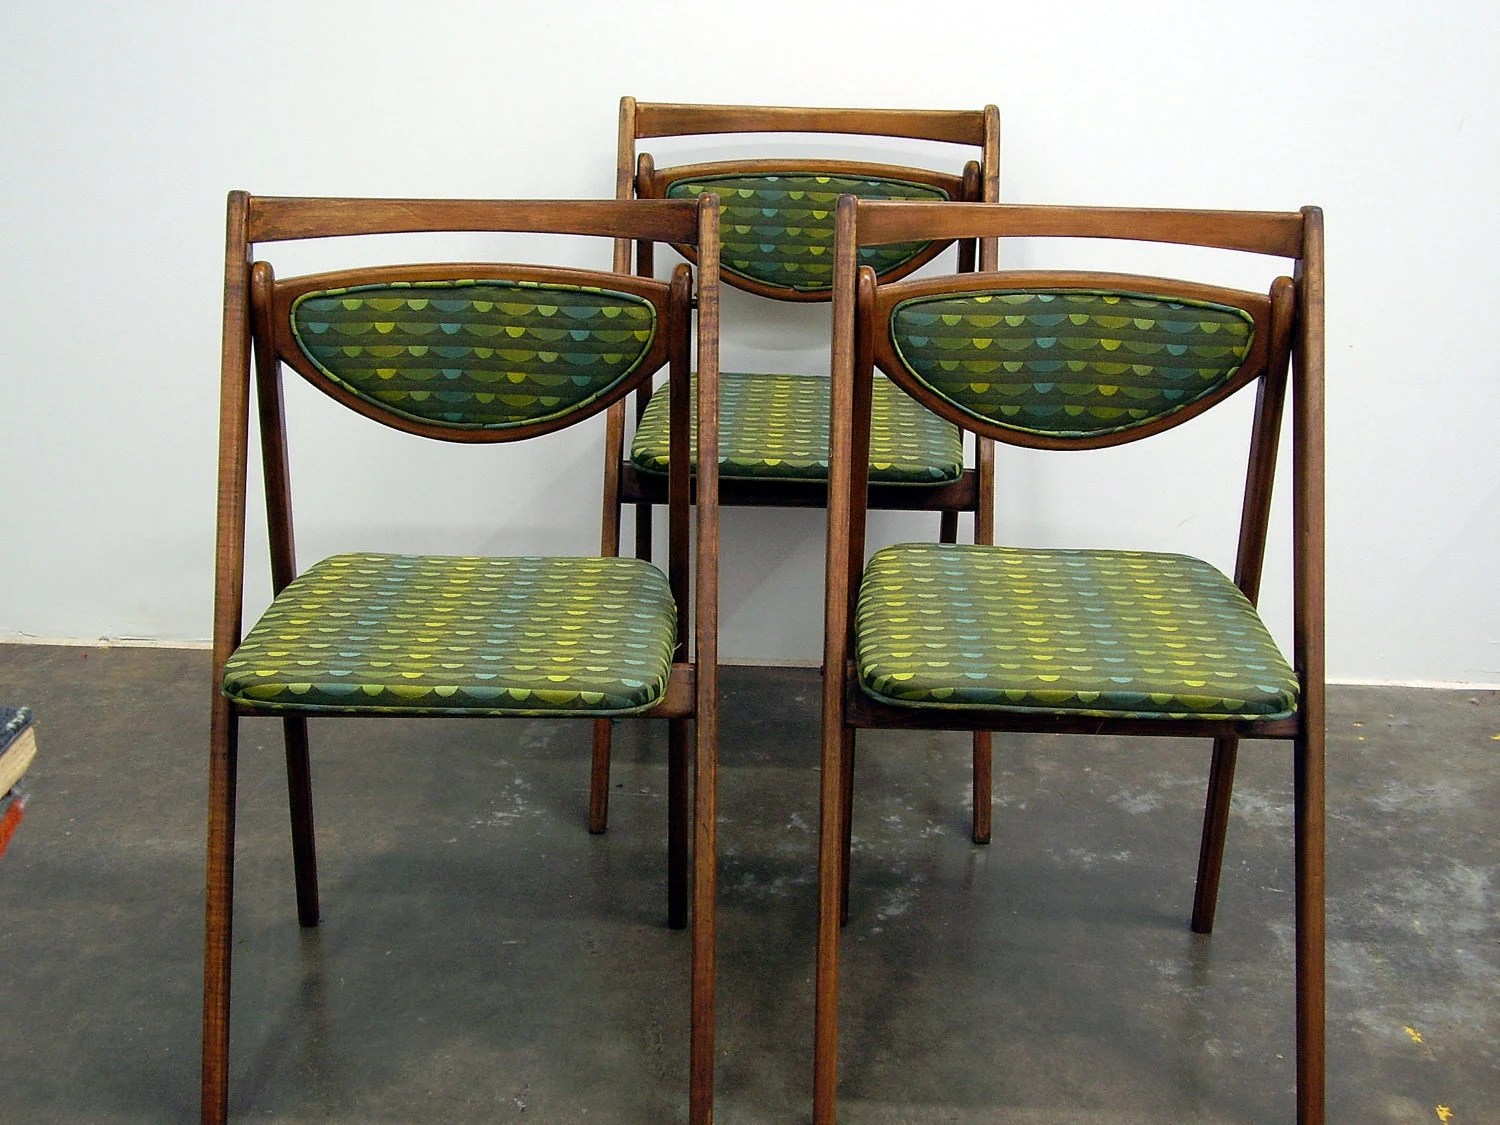 Stakmore Folding Chair Mid Century Vintage Stakmore Wooden Folding Chairs Set Of 3